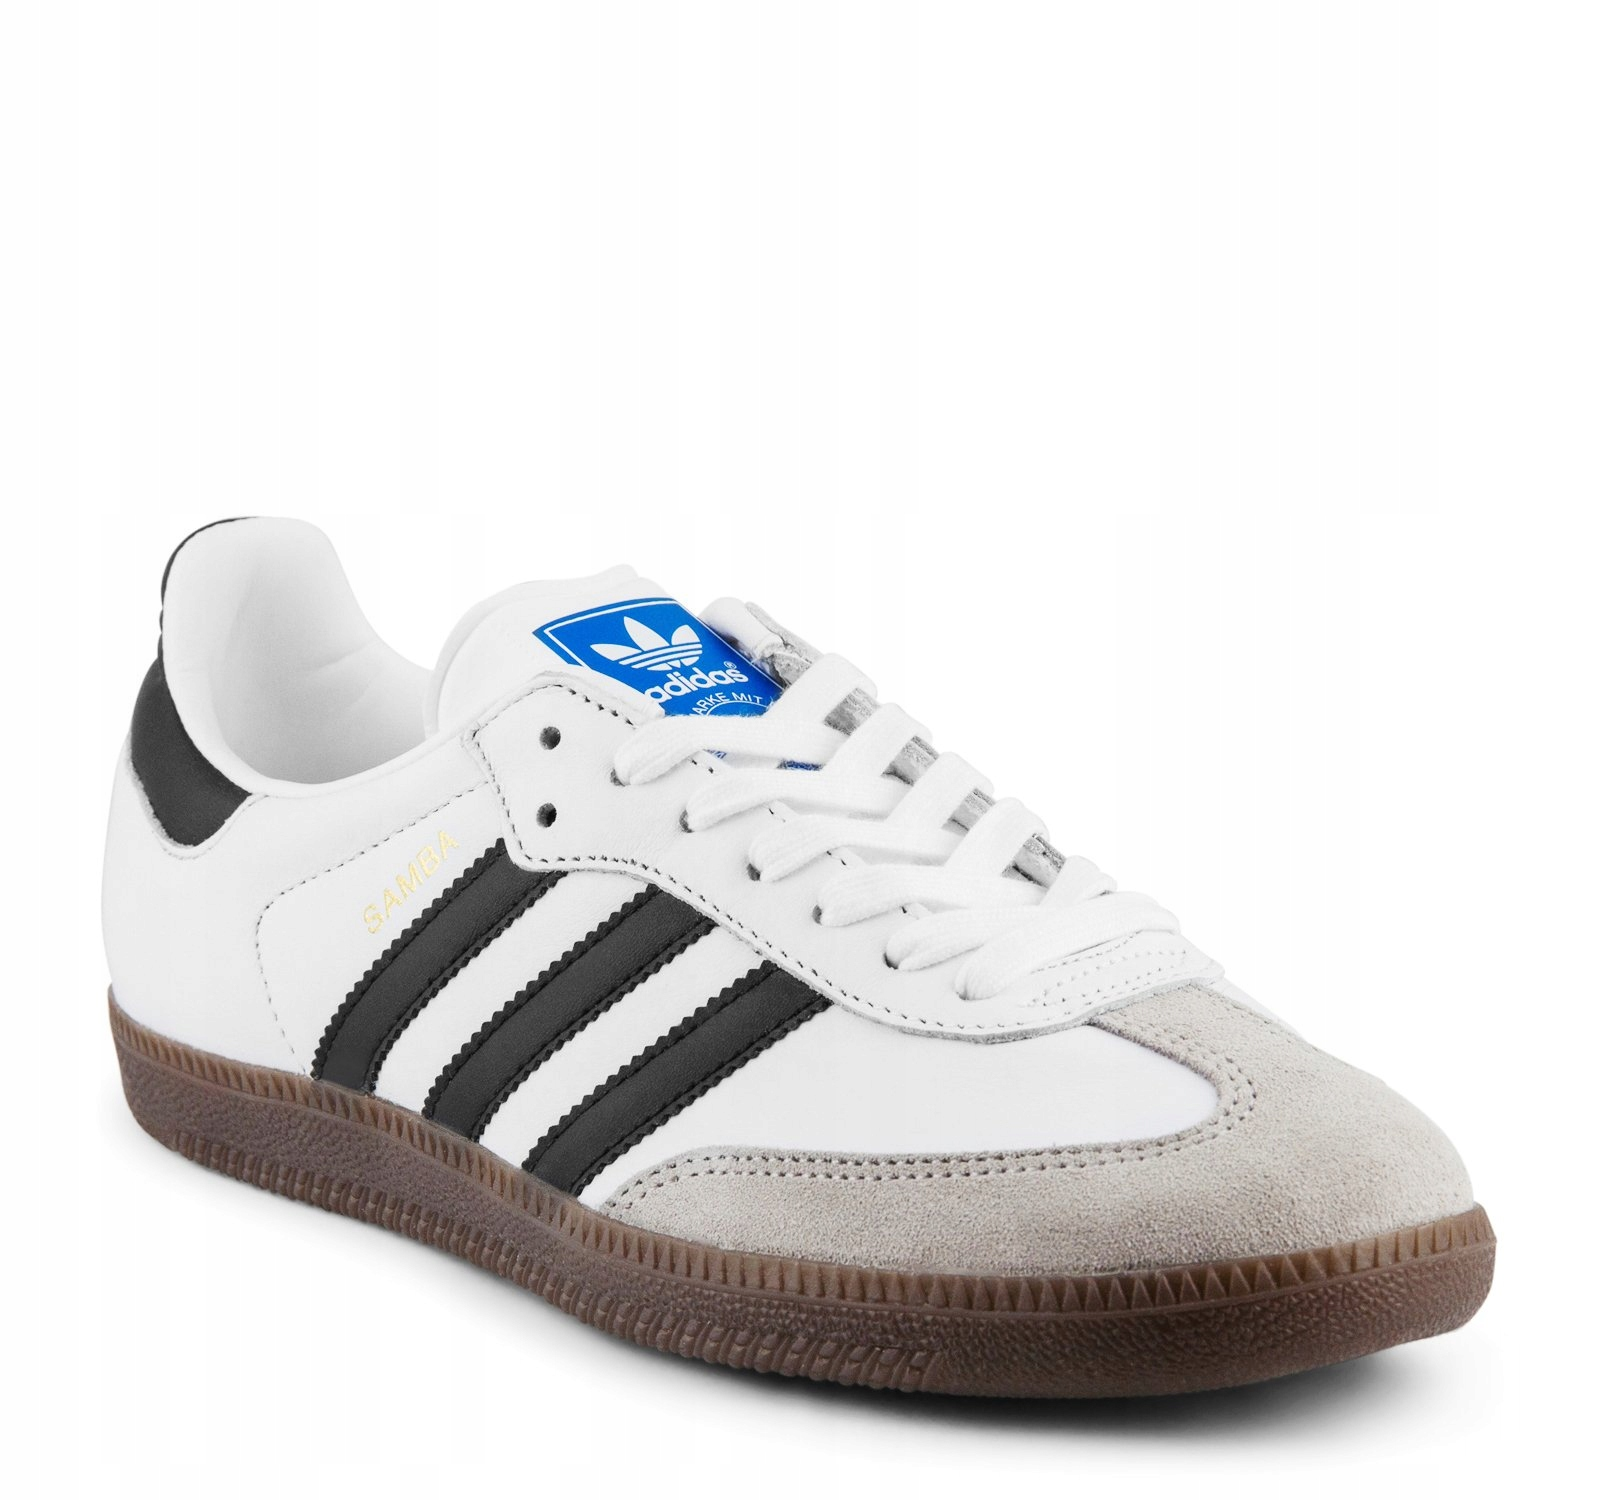 more photos c05f1 38cdd BUTY ADIDAS ORIGINALS SAMBA OG BZ0057 r 44 (7537479454)